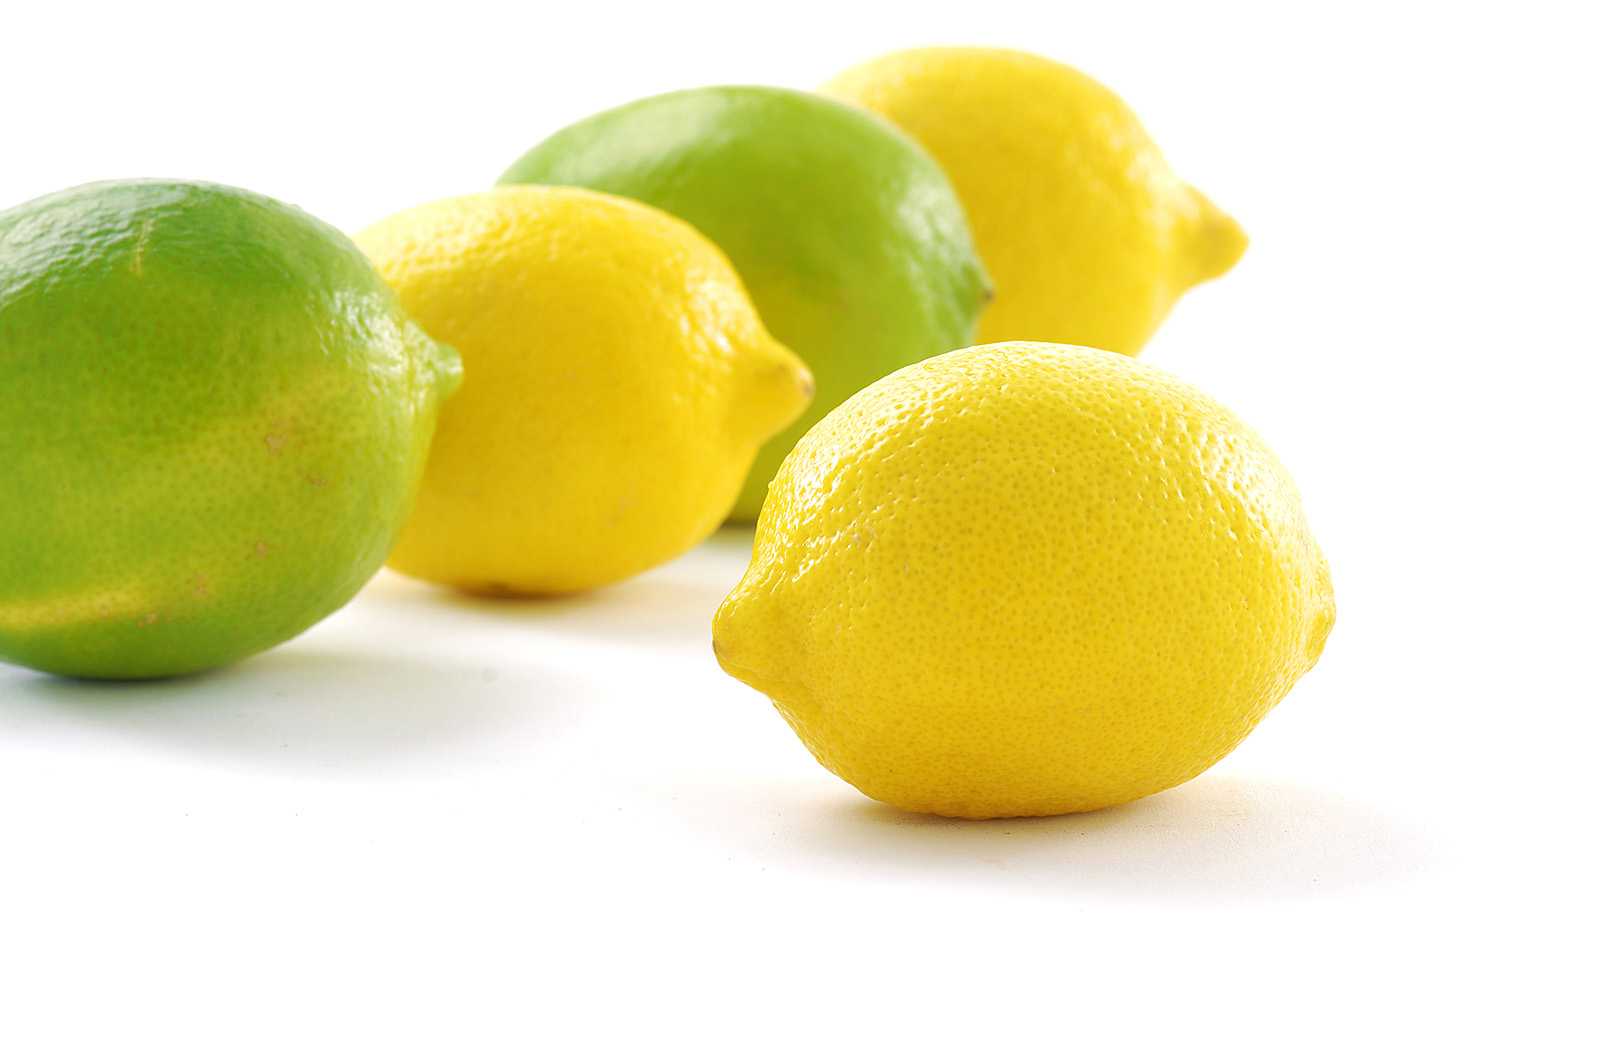 Green and yellow lemons 50117